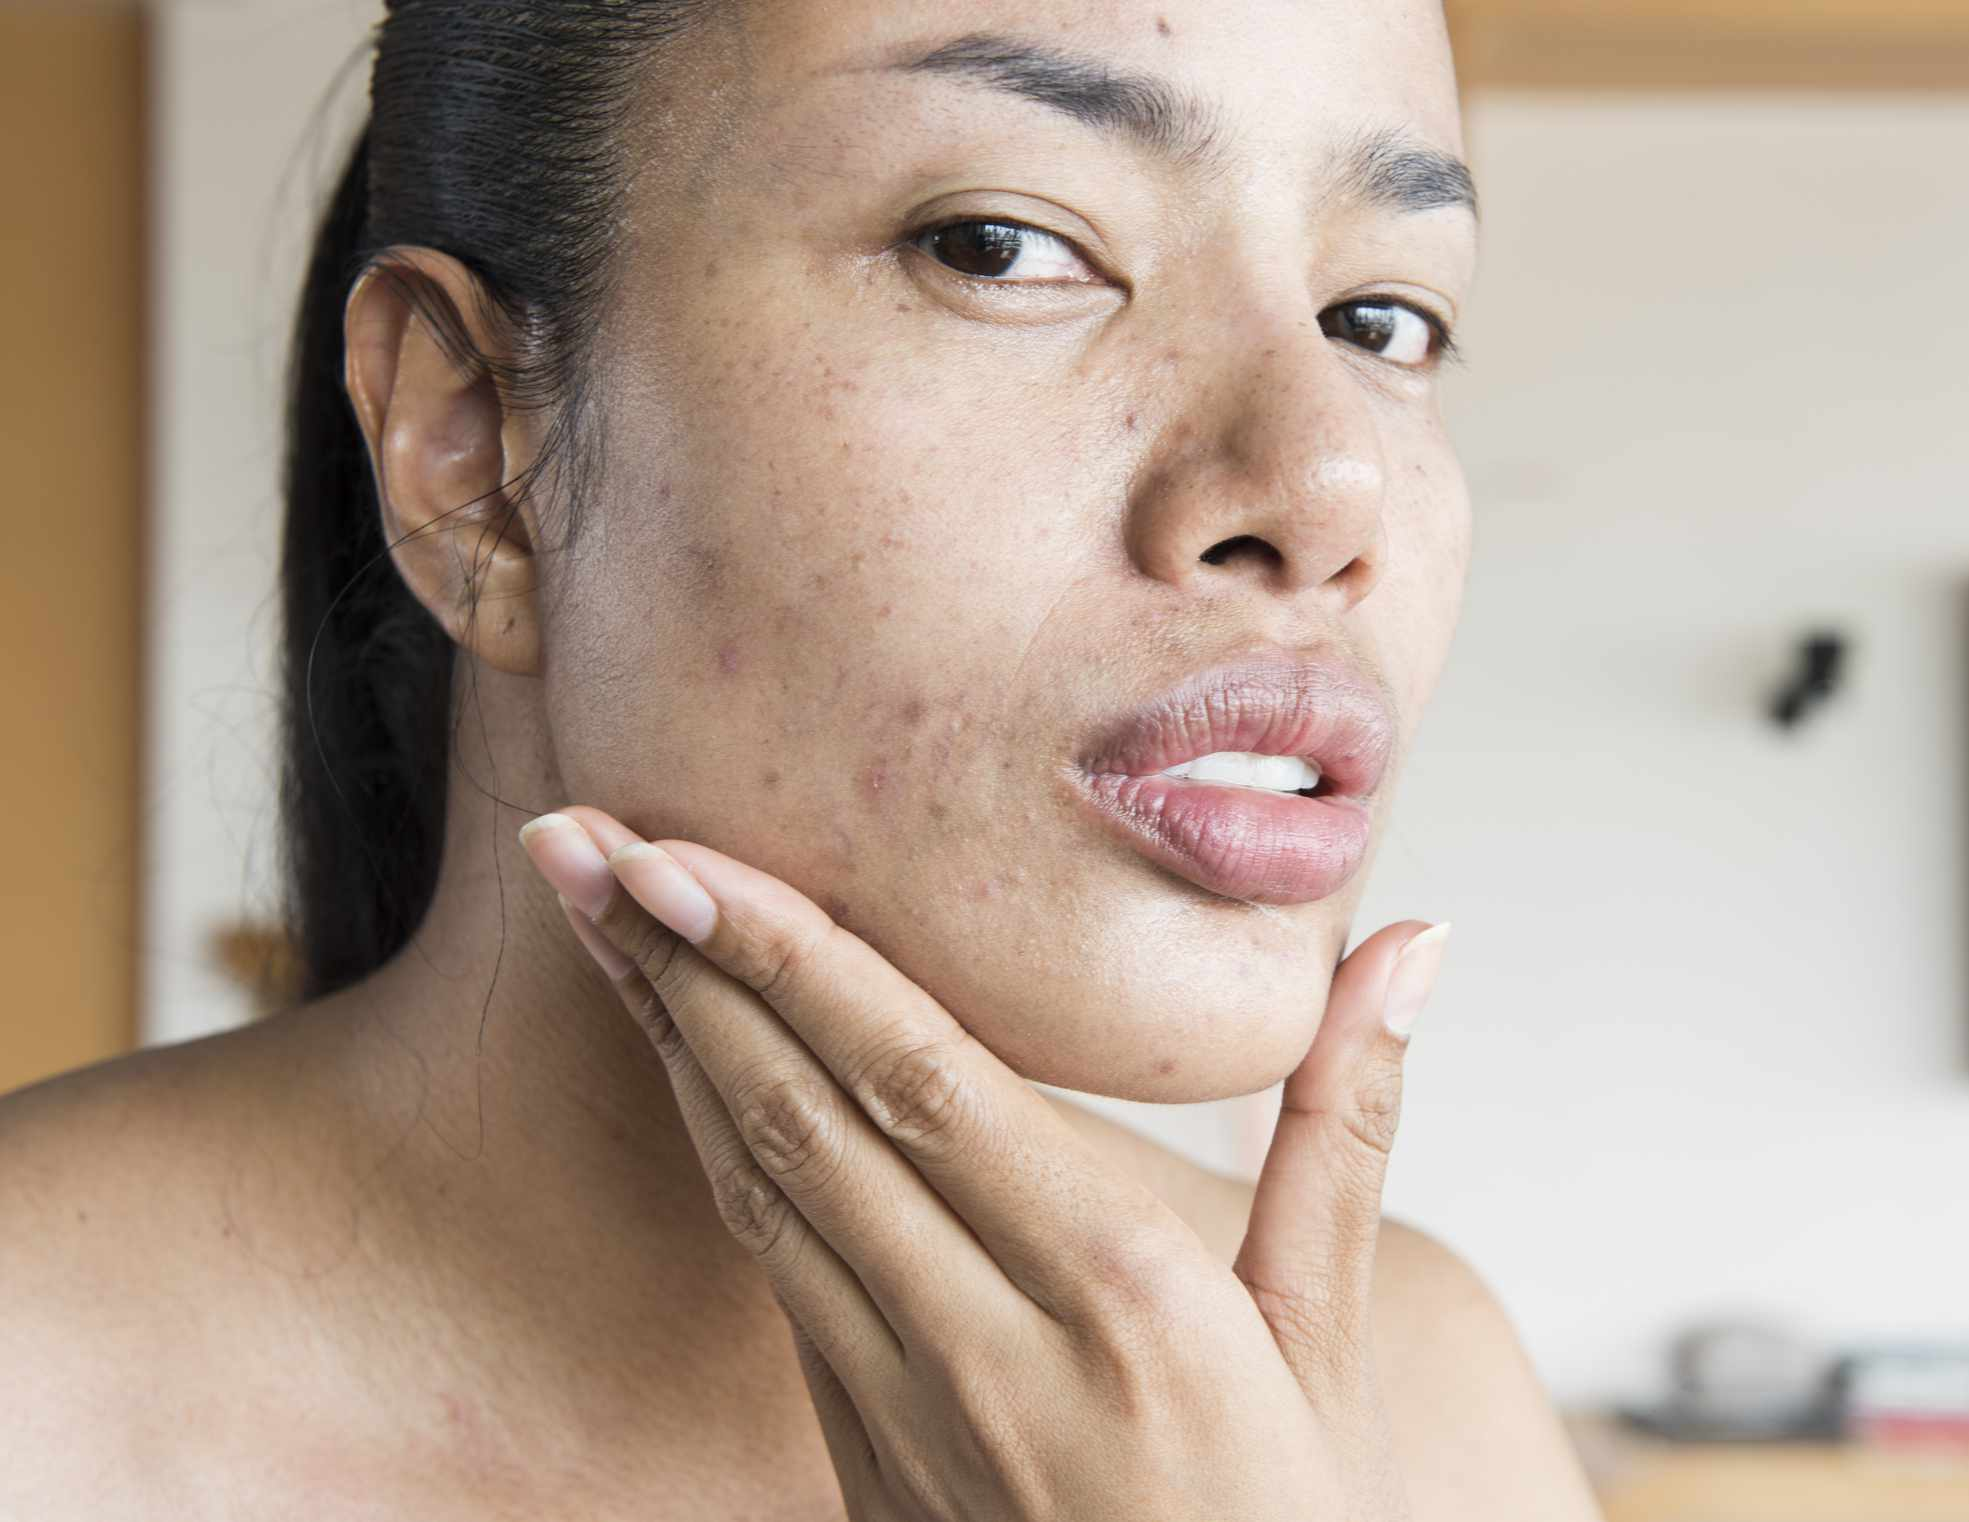 woman with acne scarring